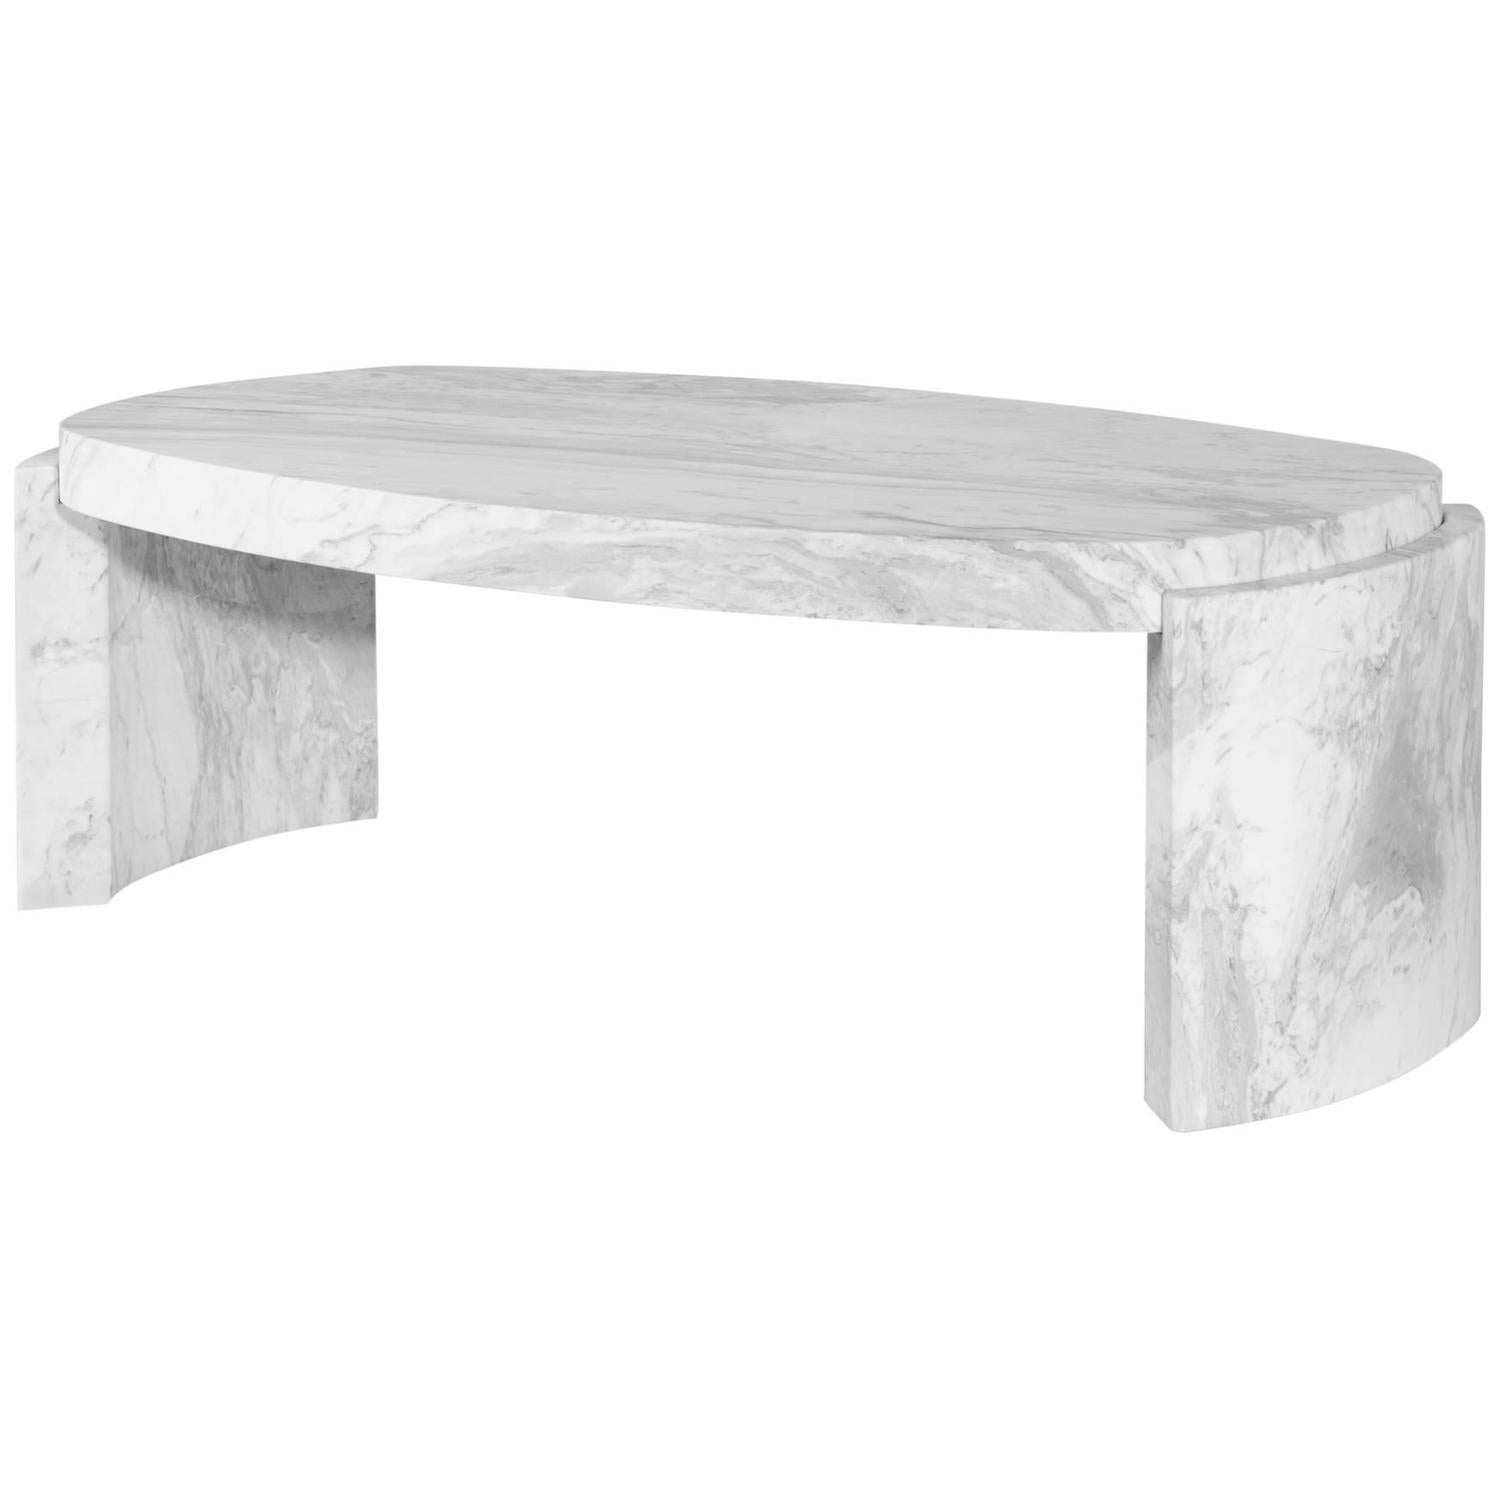 ankara coffee table in white carrara marble for sale at 1stdibs. Black Bedroom Furniture Sets. Home Design Ideas